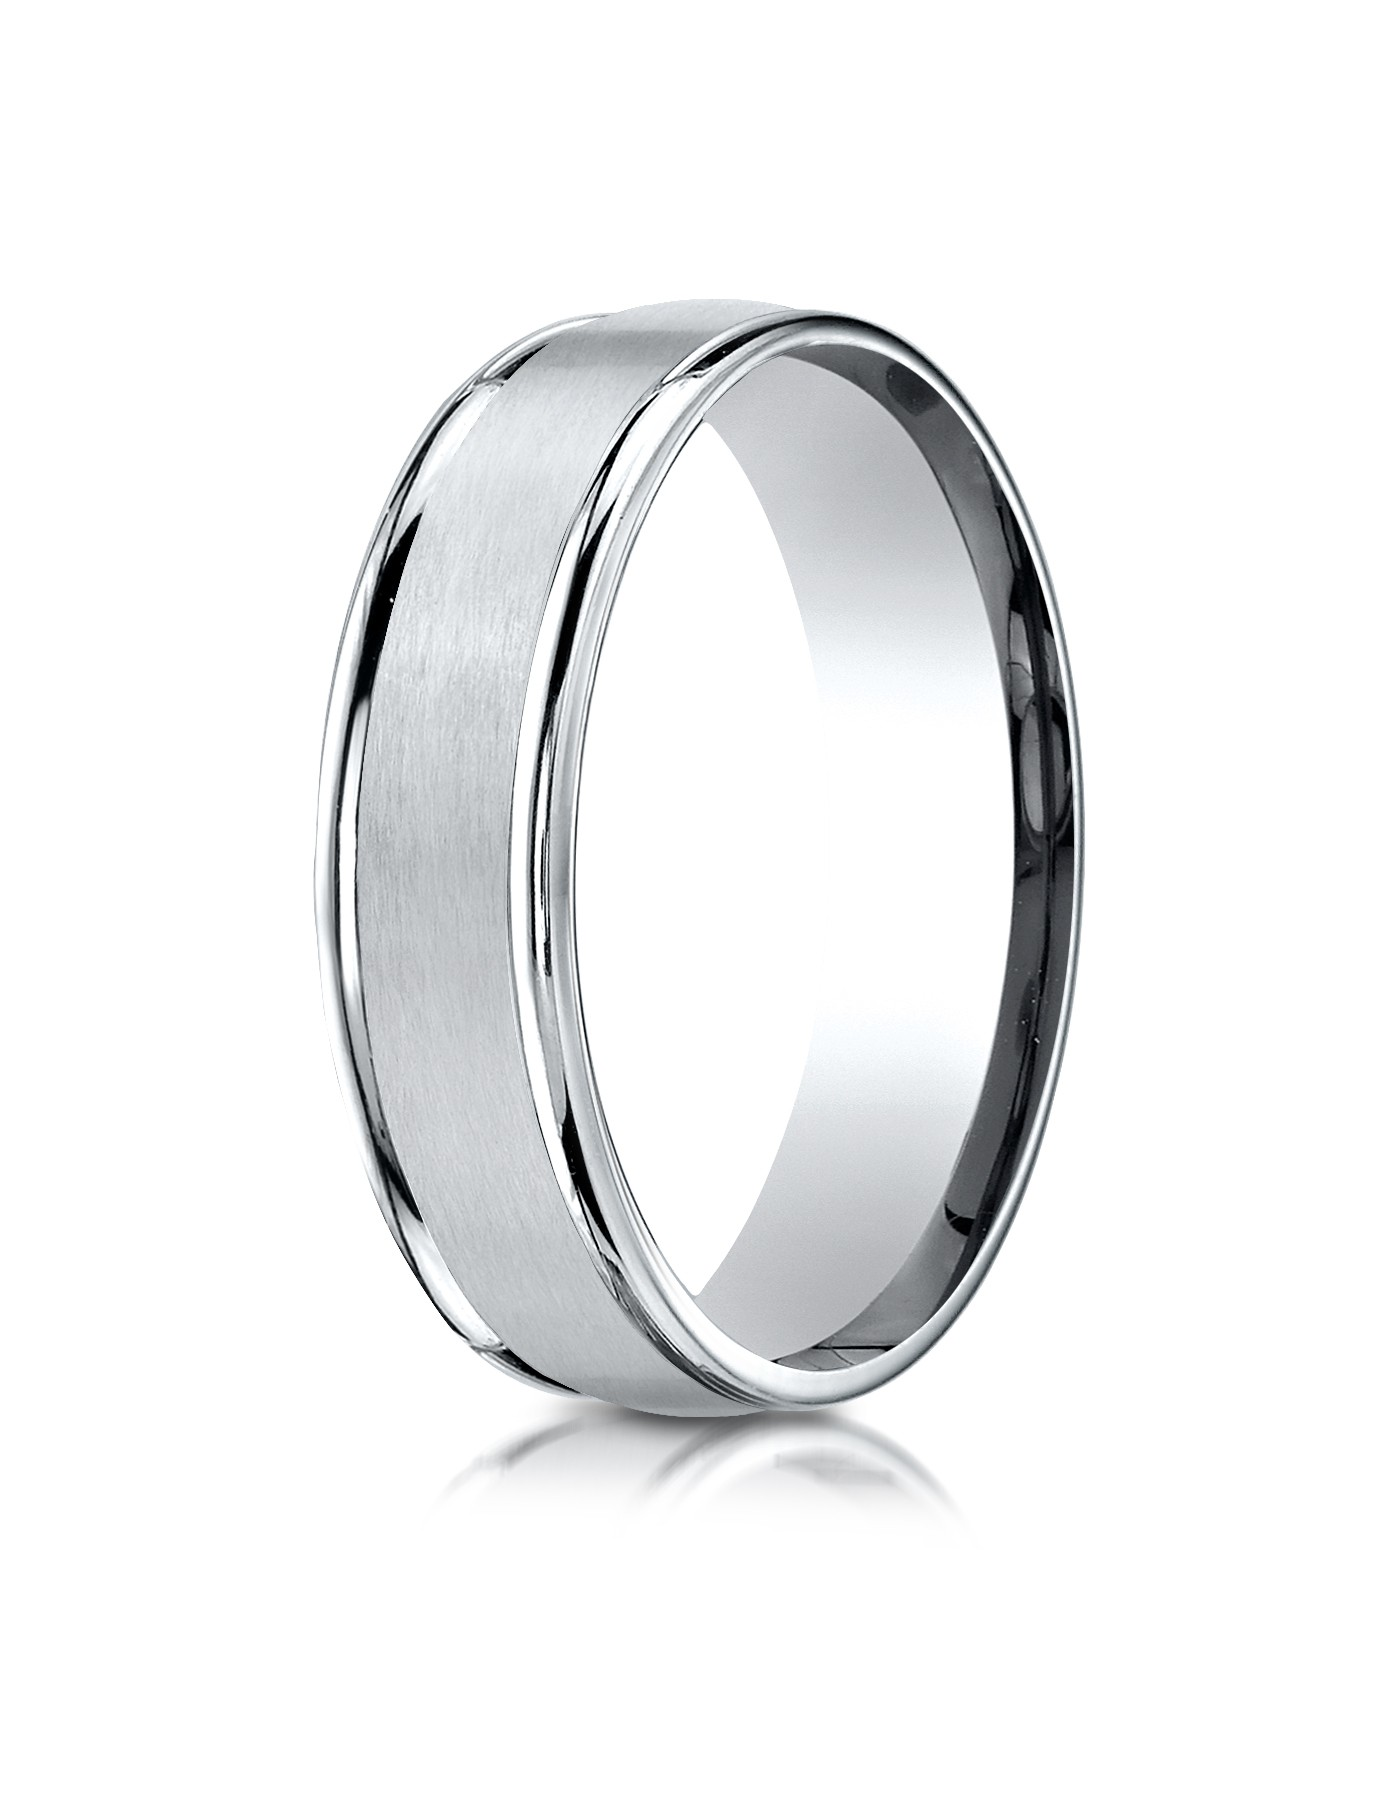 14k White Gold 6mm Comfort-fit Satin Finish High Polished Round Edge Carved Design Band